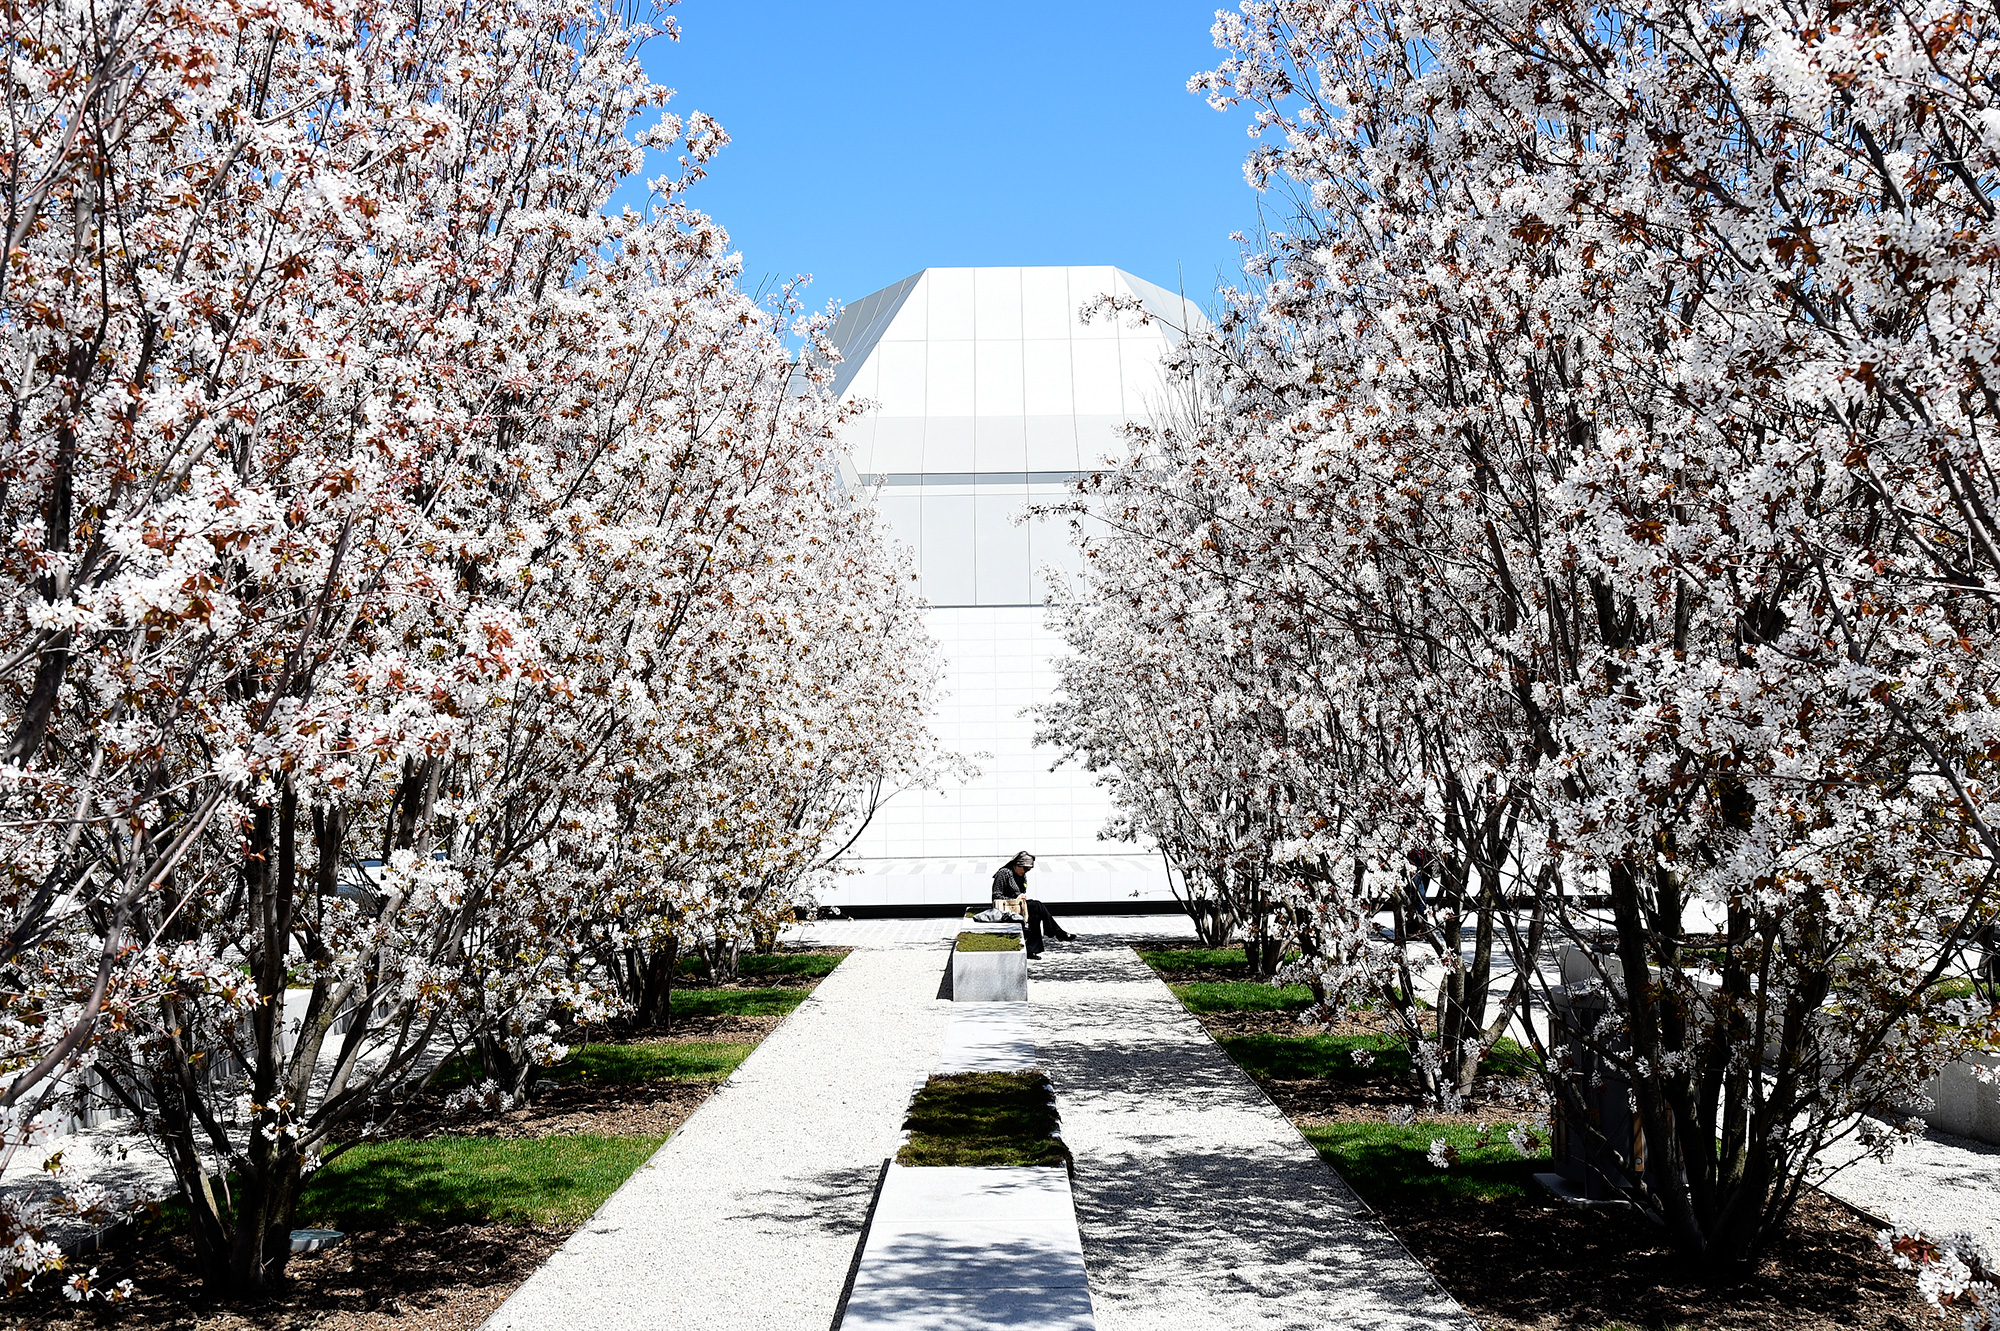 Parks and gardens in canada aga khan development network for Landscape architecture canada